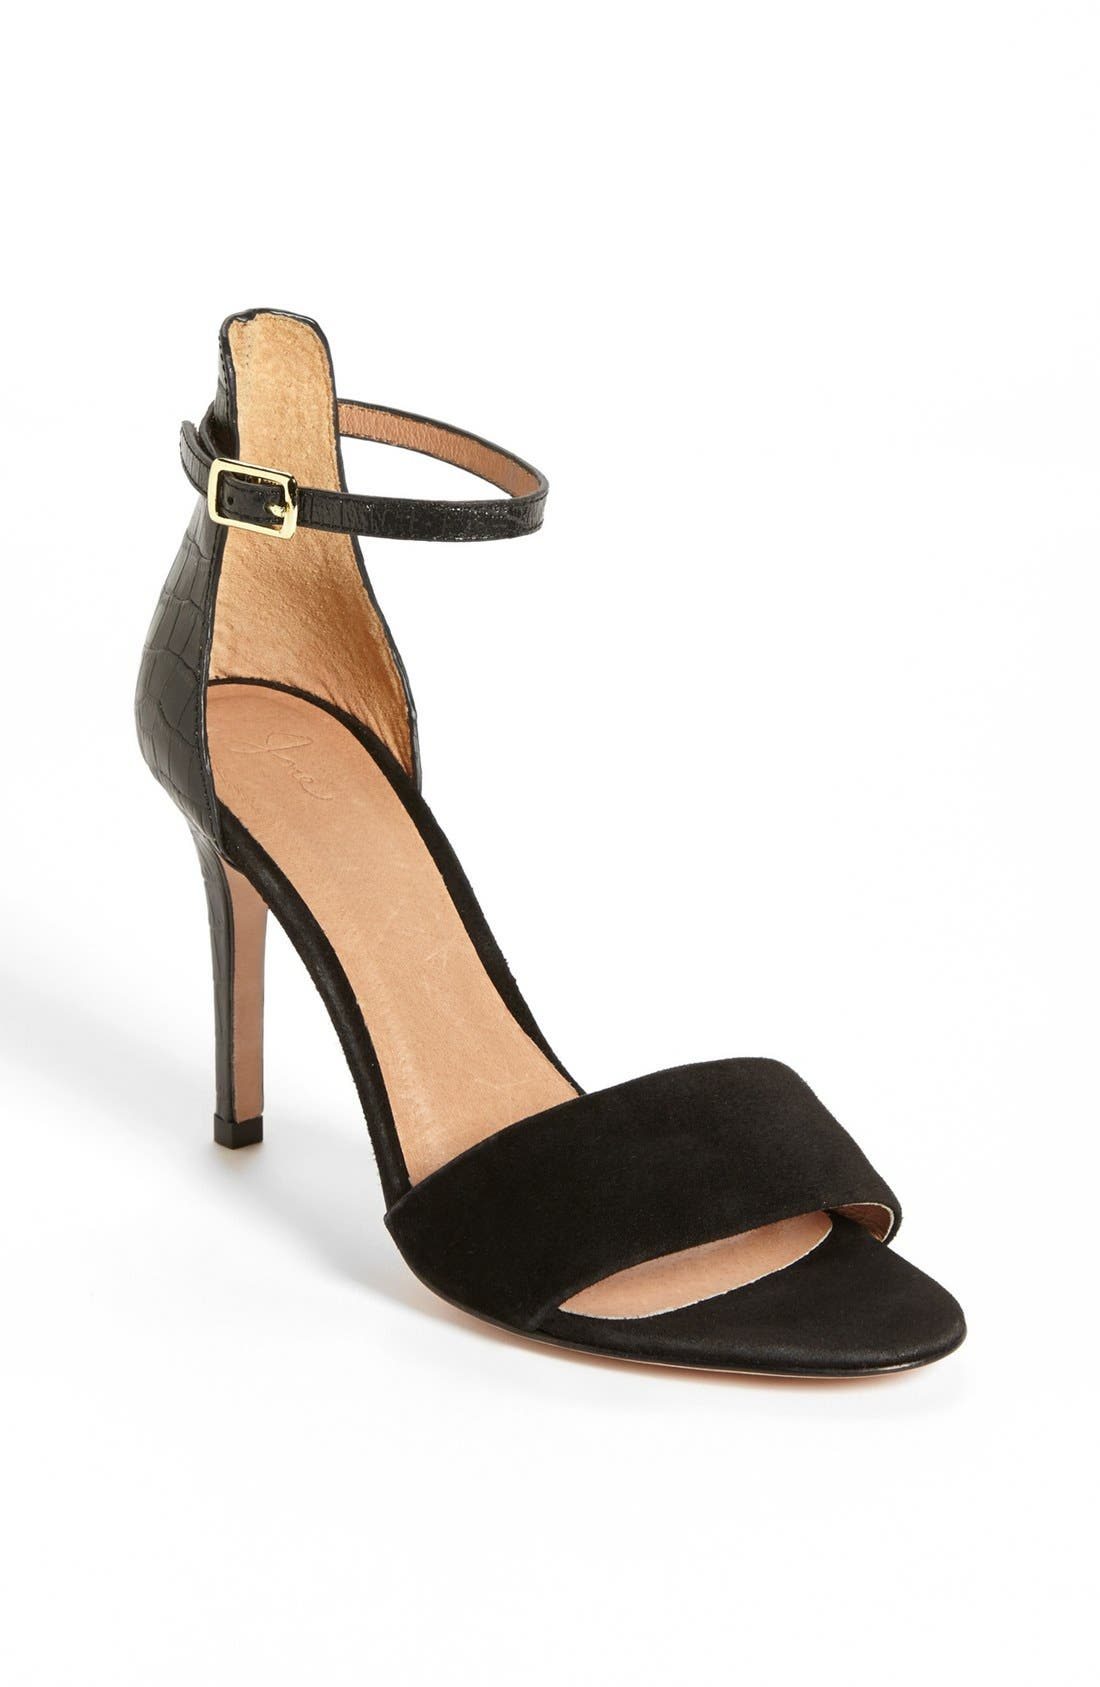 Main Image - Joie 'Jaclyn' Leather Sandal